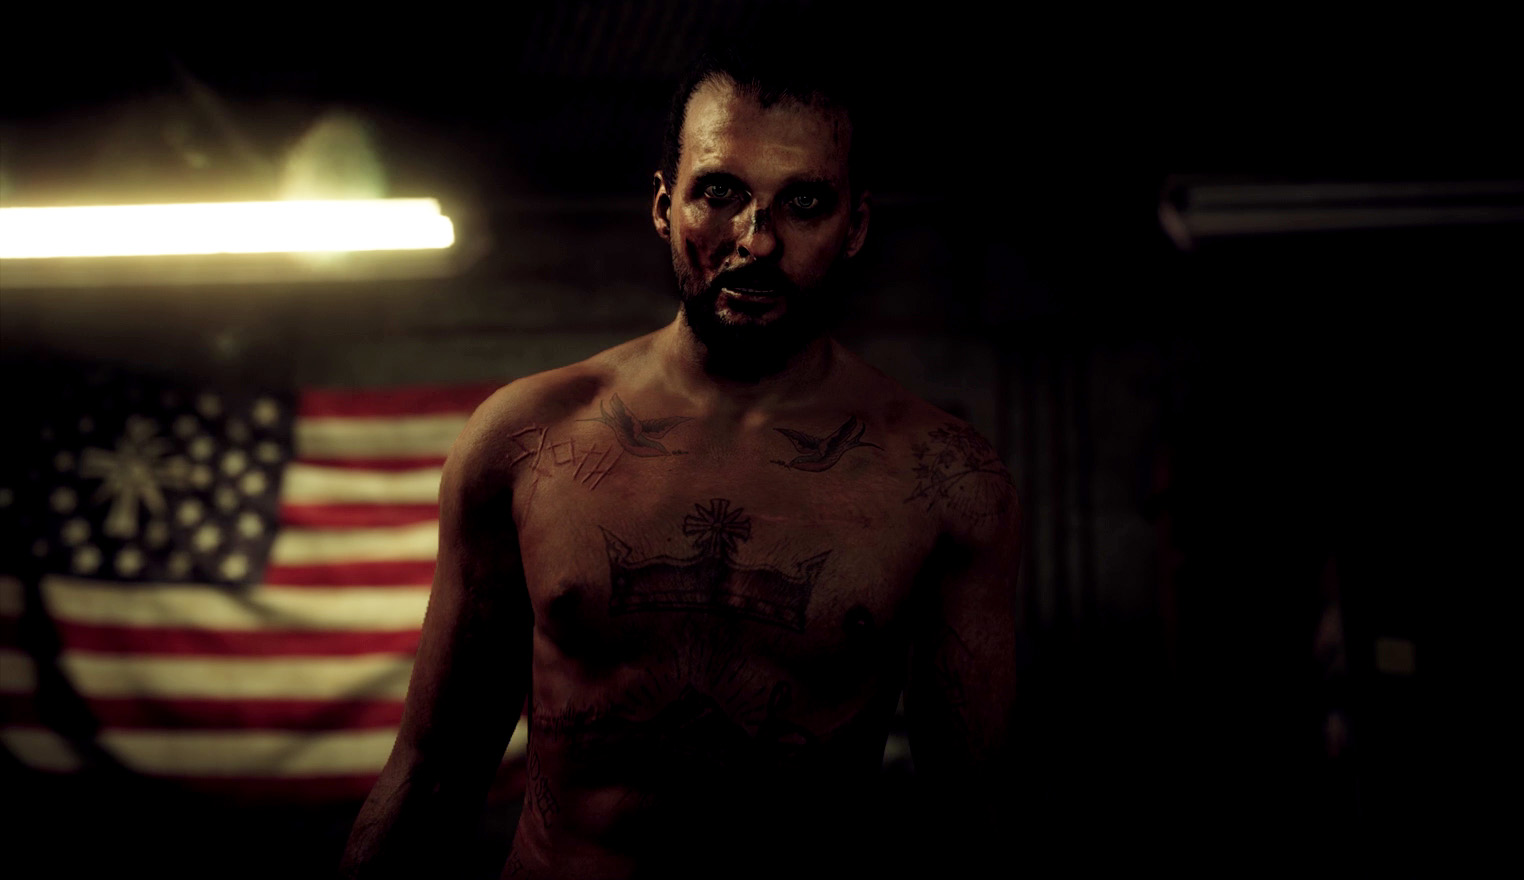 Far Cry 5 Embraces Futility And Nihilism In Both Of Its Endings